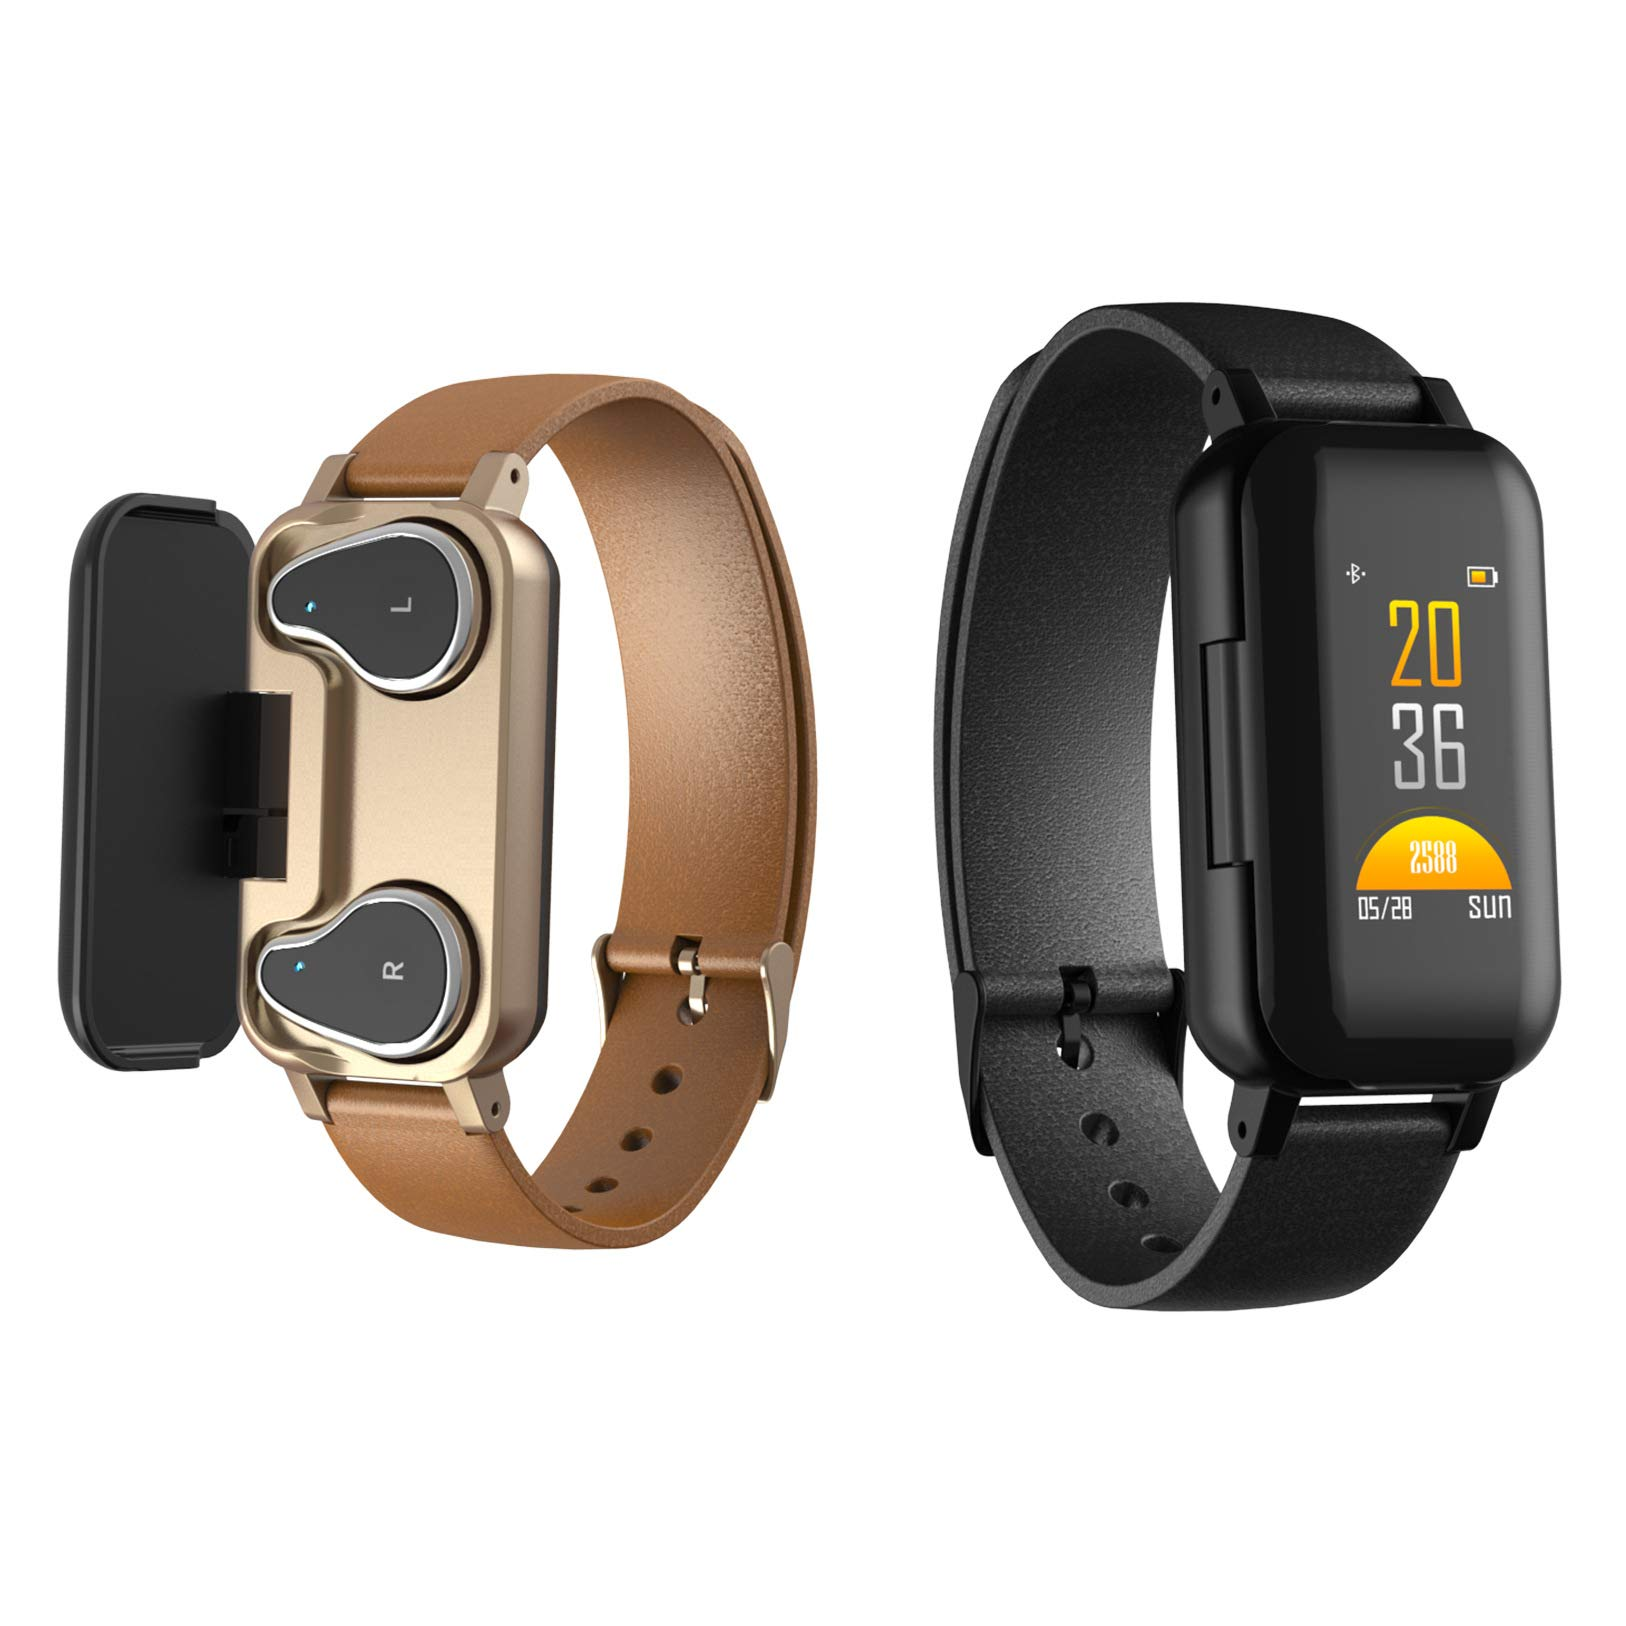 2019 Bluetooth Headphone Fitness Bracelet 2 in 1 - Smart Watch & Bluetooth Earbuds,Fitness Tracker,Heart Rate Blood Pressure Monitor,Waterproof with Stopwatch,Step Counter for Women Men (Black)